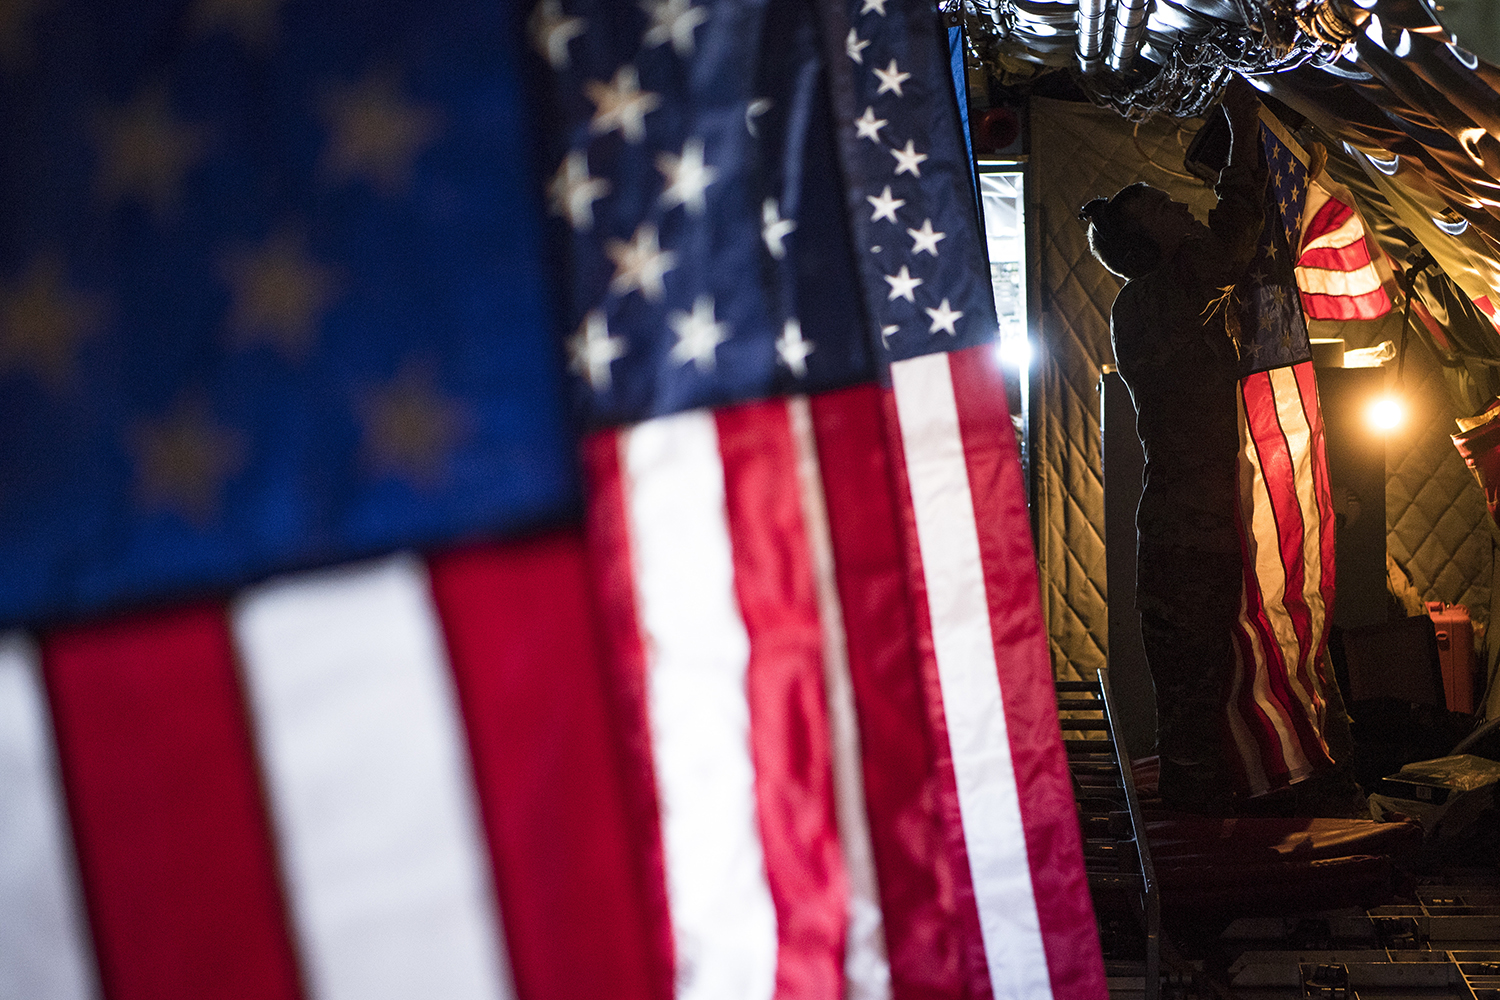 A 28th Expeditionary Air Refueling Squadron pilot hangs the American flag inside a KC-135 Stratotanker at Al Udeid Air Base, Qatar, Sept. 24, 2019. (Master Sgt. Russ Scalf/Air Force)